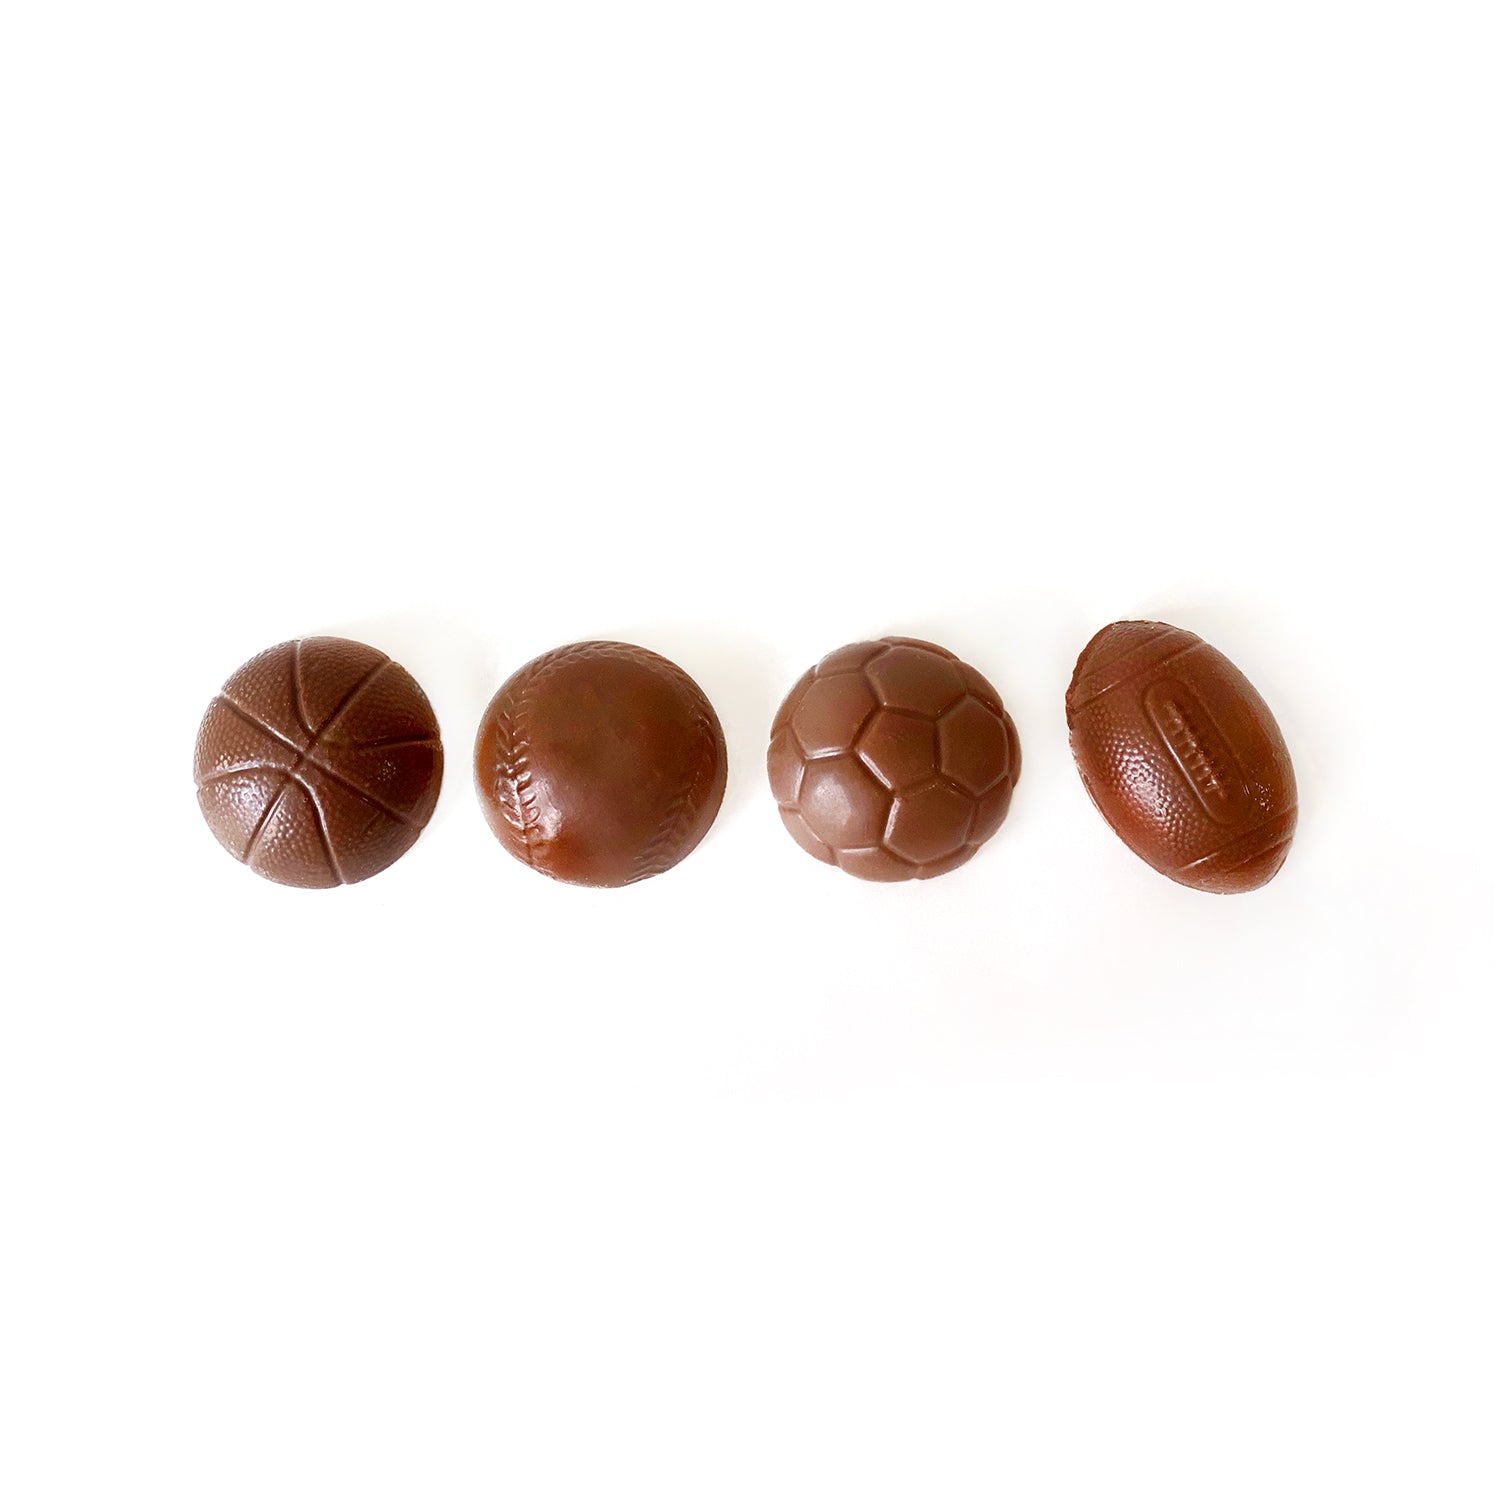 Milk chocolate sports balls for your sporty dad.